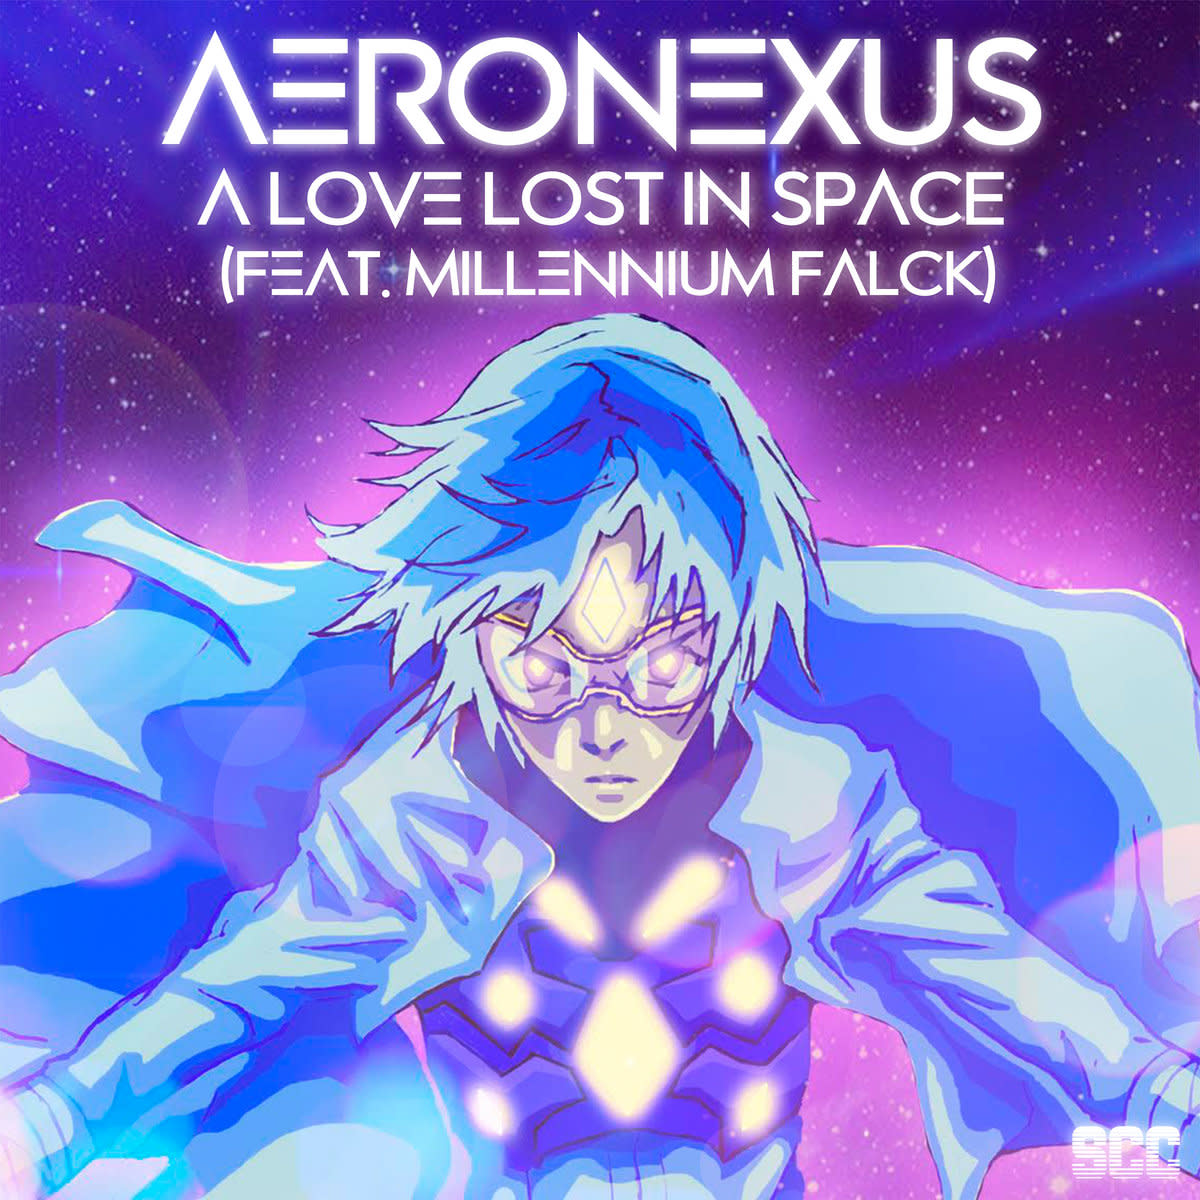 """Artwork for the Single, """"A Love Lost in Space,"""" by Aeronexus and Millennium Falck"""